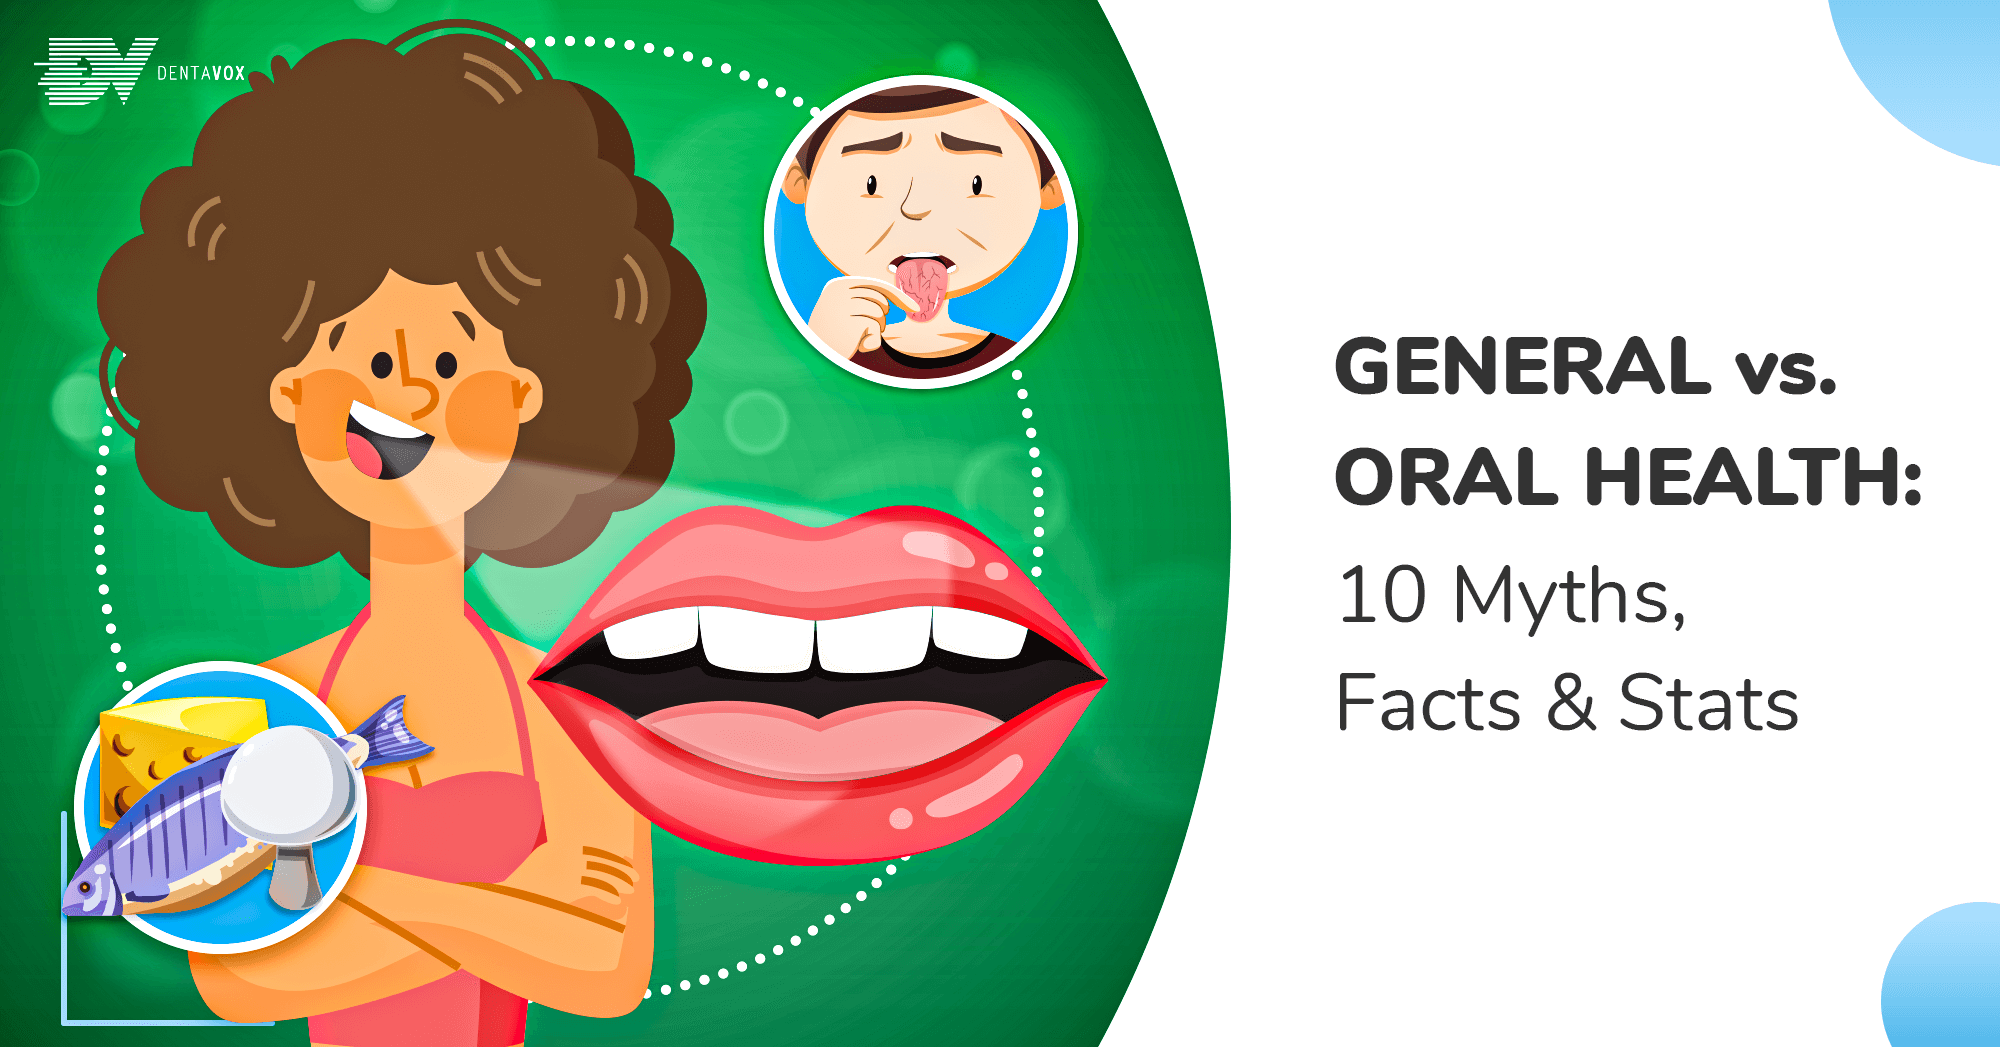 General oral health myths dentavox blog soc